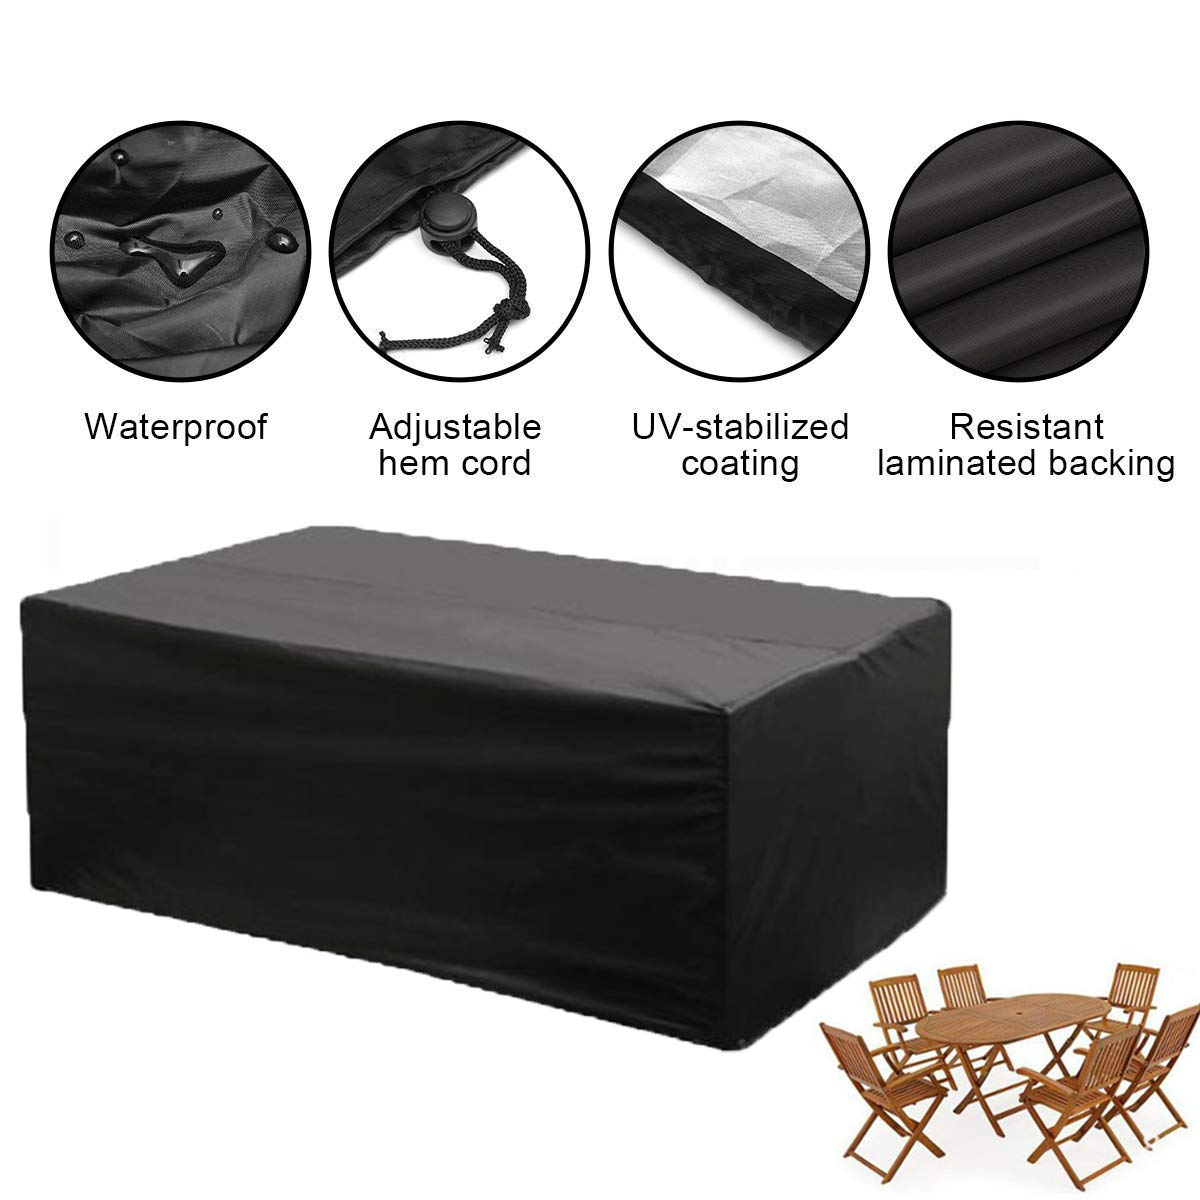 KING DO WAY Furniture Cover with Eyelets and Nylon Cord 213cm x 132cm x 74cm Waterproof Polyester Outdoor Sofa Sets Protection Garden Outdoor Table Cover Cube Sets Dust Cover